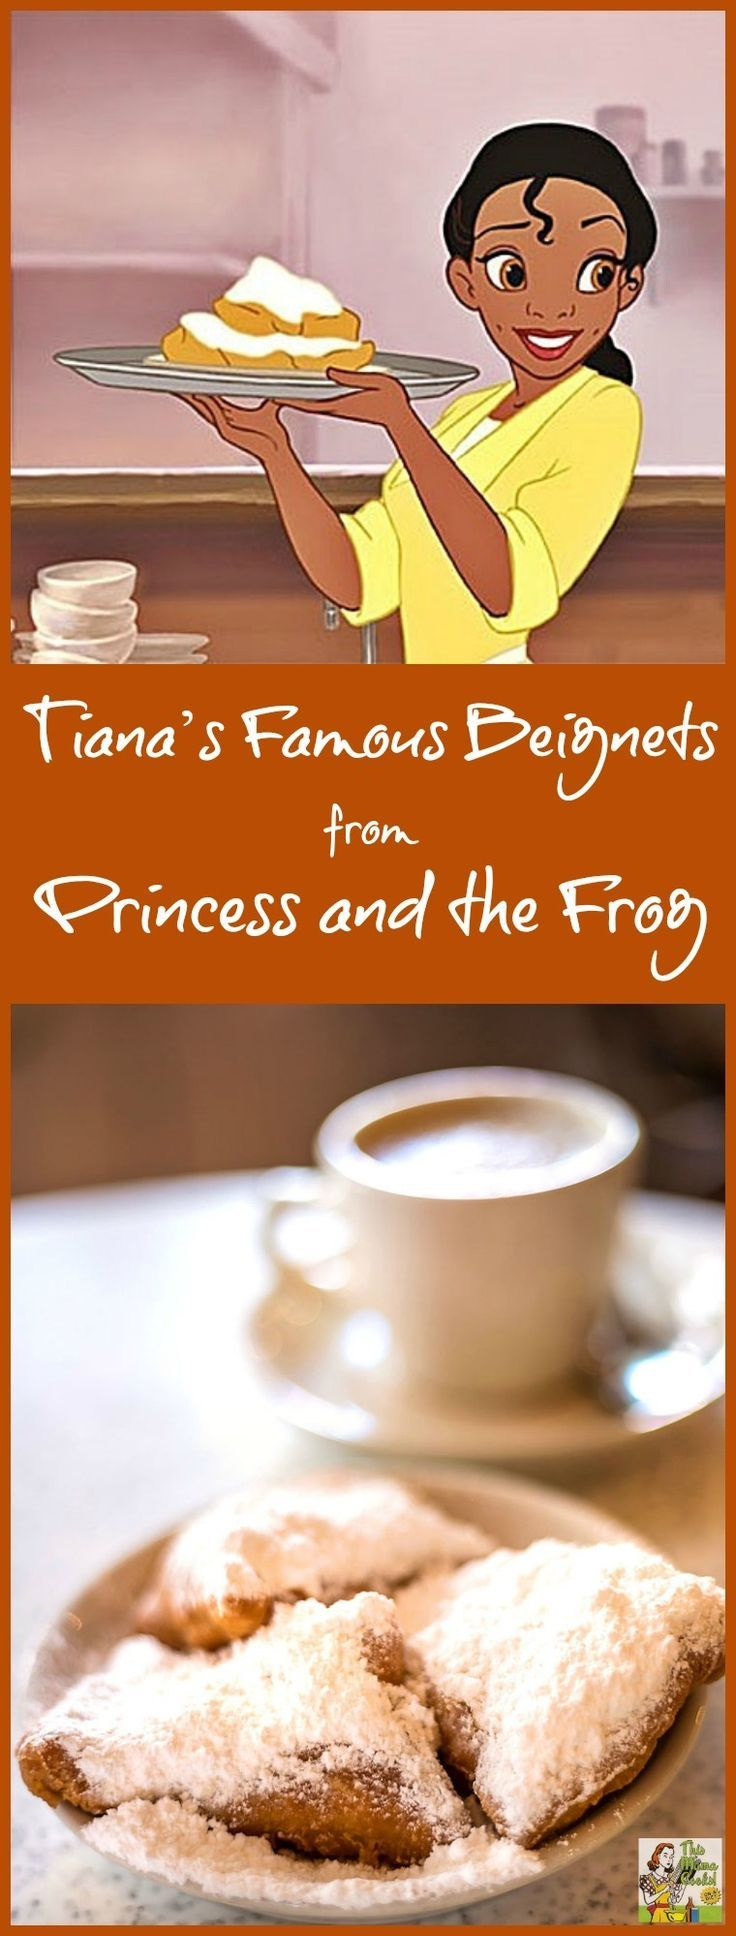 Are you looking for an beignet recipe like they make in New Orleans? Try  Tiana's Famous Beignets recipe from the Princess and the Frog movie and cookbook!(Sweet Recipes Desserts)